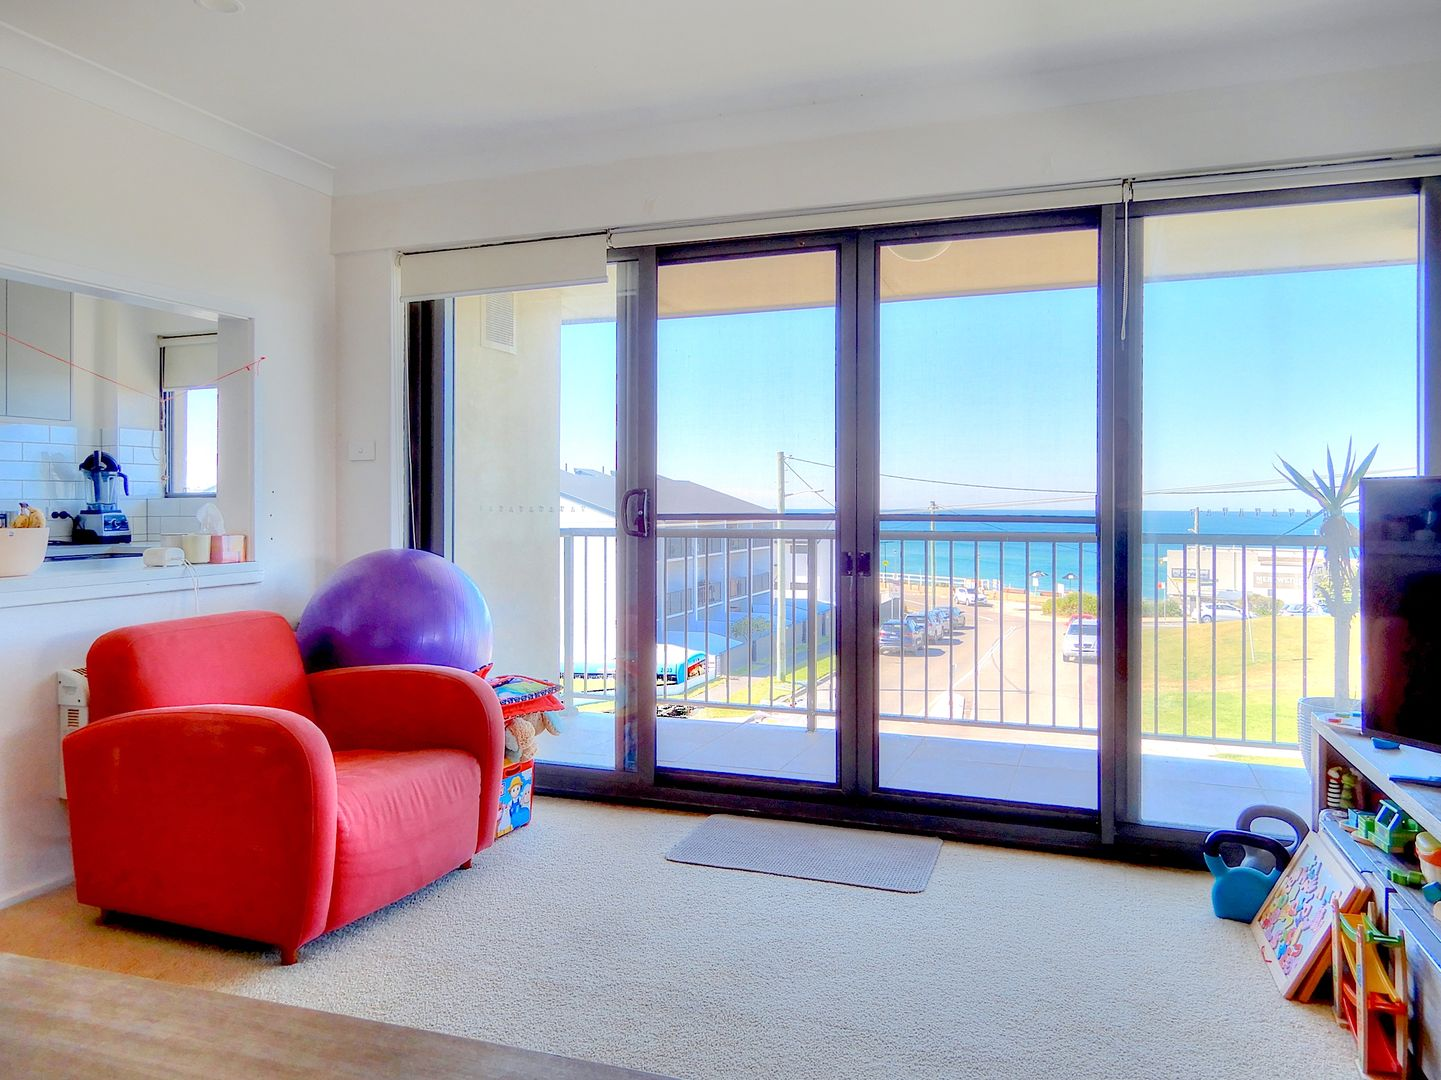 5/81 Frederick St, Merewether NSW 2291, Image 0